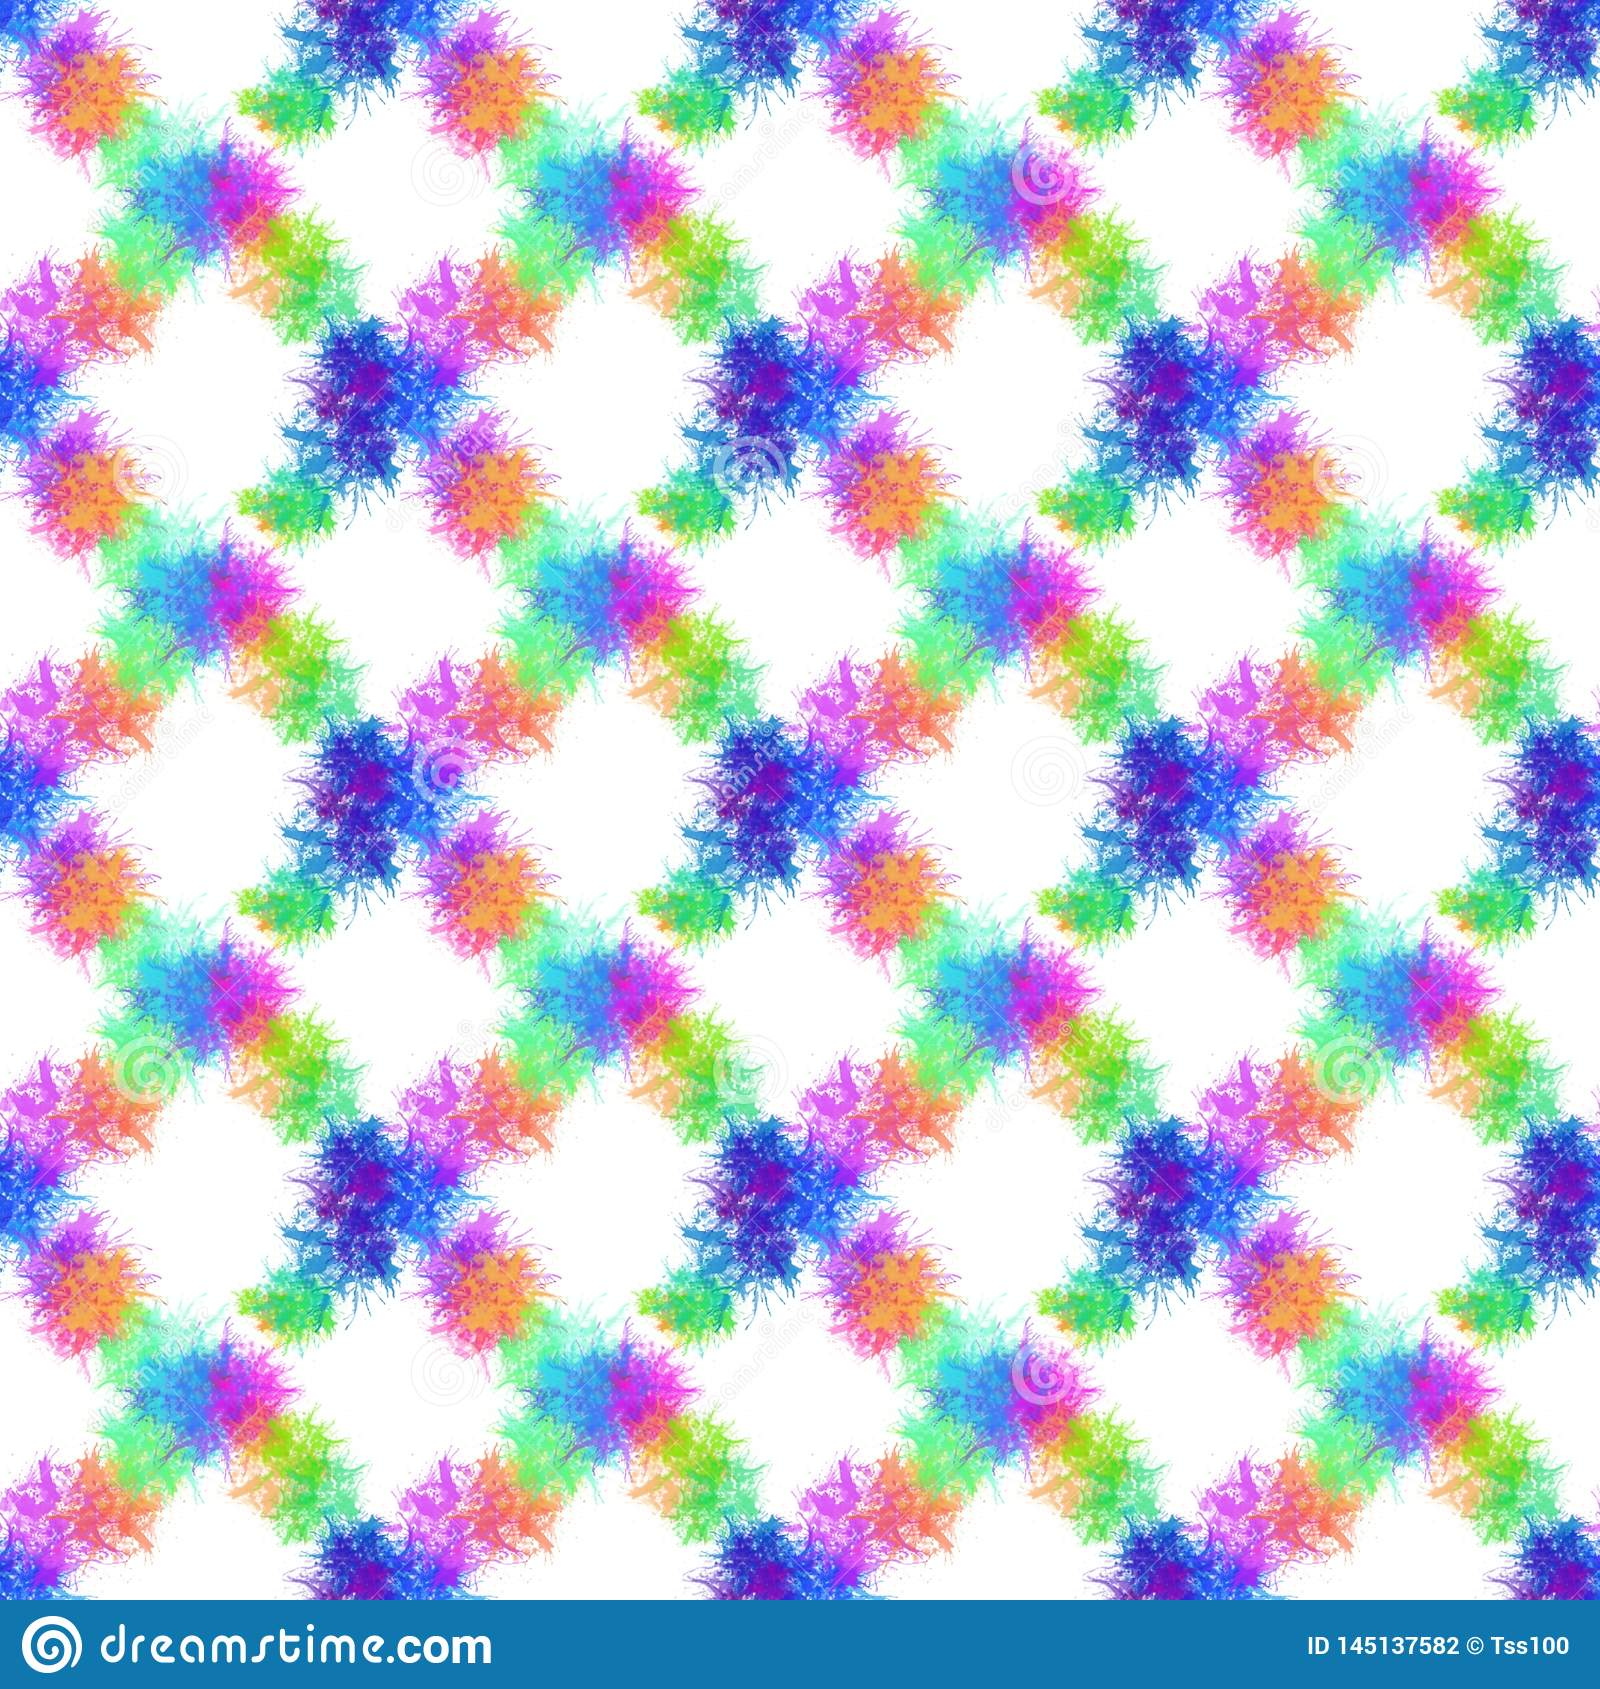 A seamless pattern with multicolor paint splashes on a white background